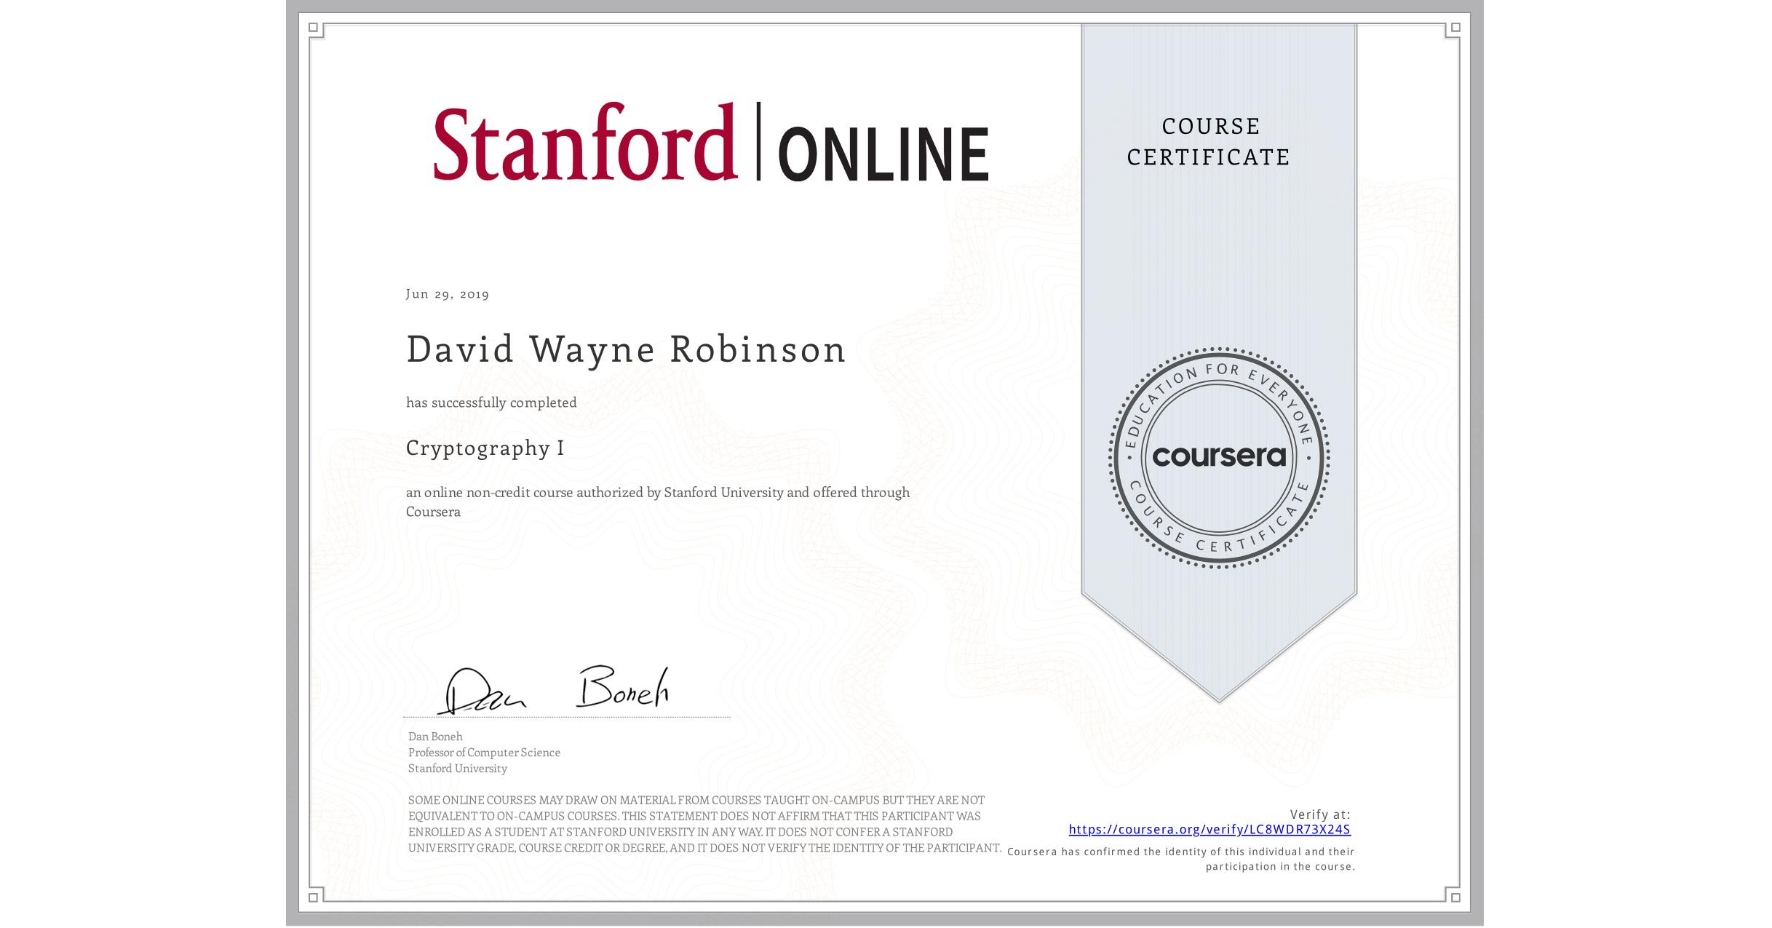 View certificate for David Wayne Robinson, Cryptography I, an online non-credit course authorized by Stanford University and offered through Coursera